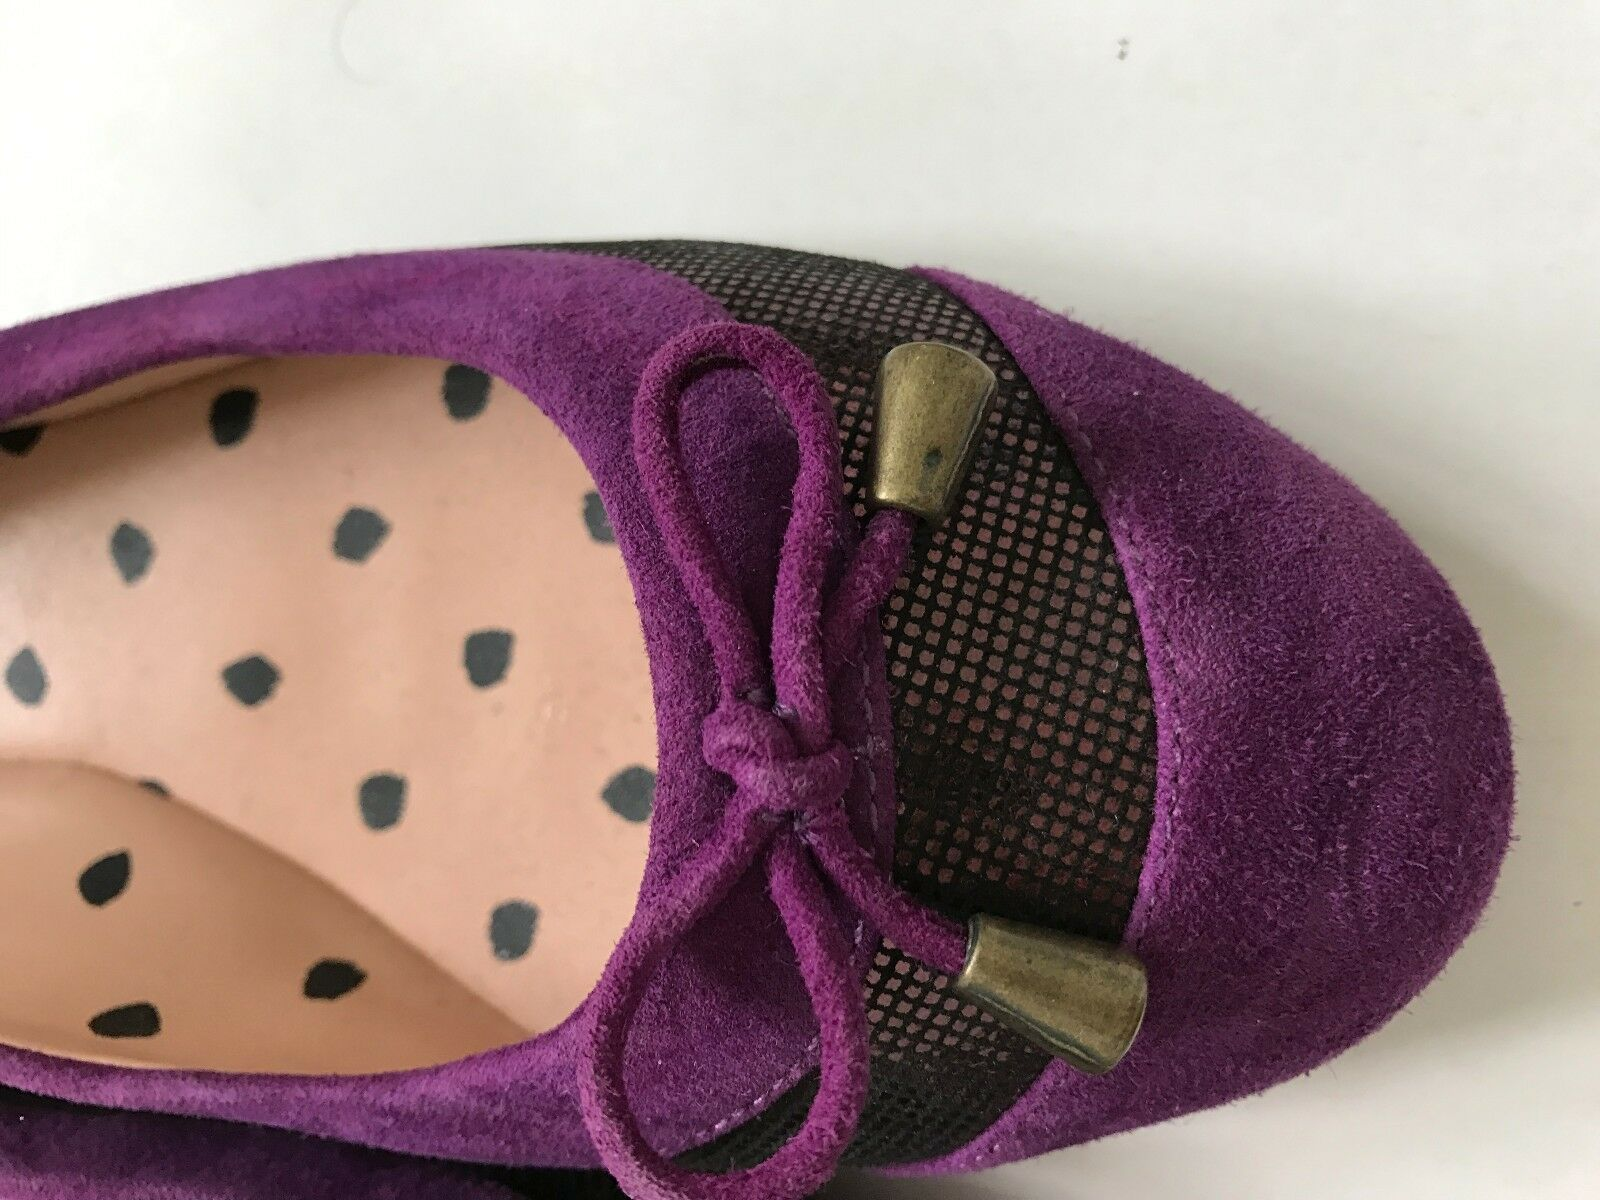 Paul Smith Femmes Violet Chaussures plates Taille UK4 EU 37 37 37 783a74